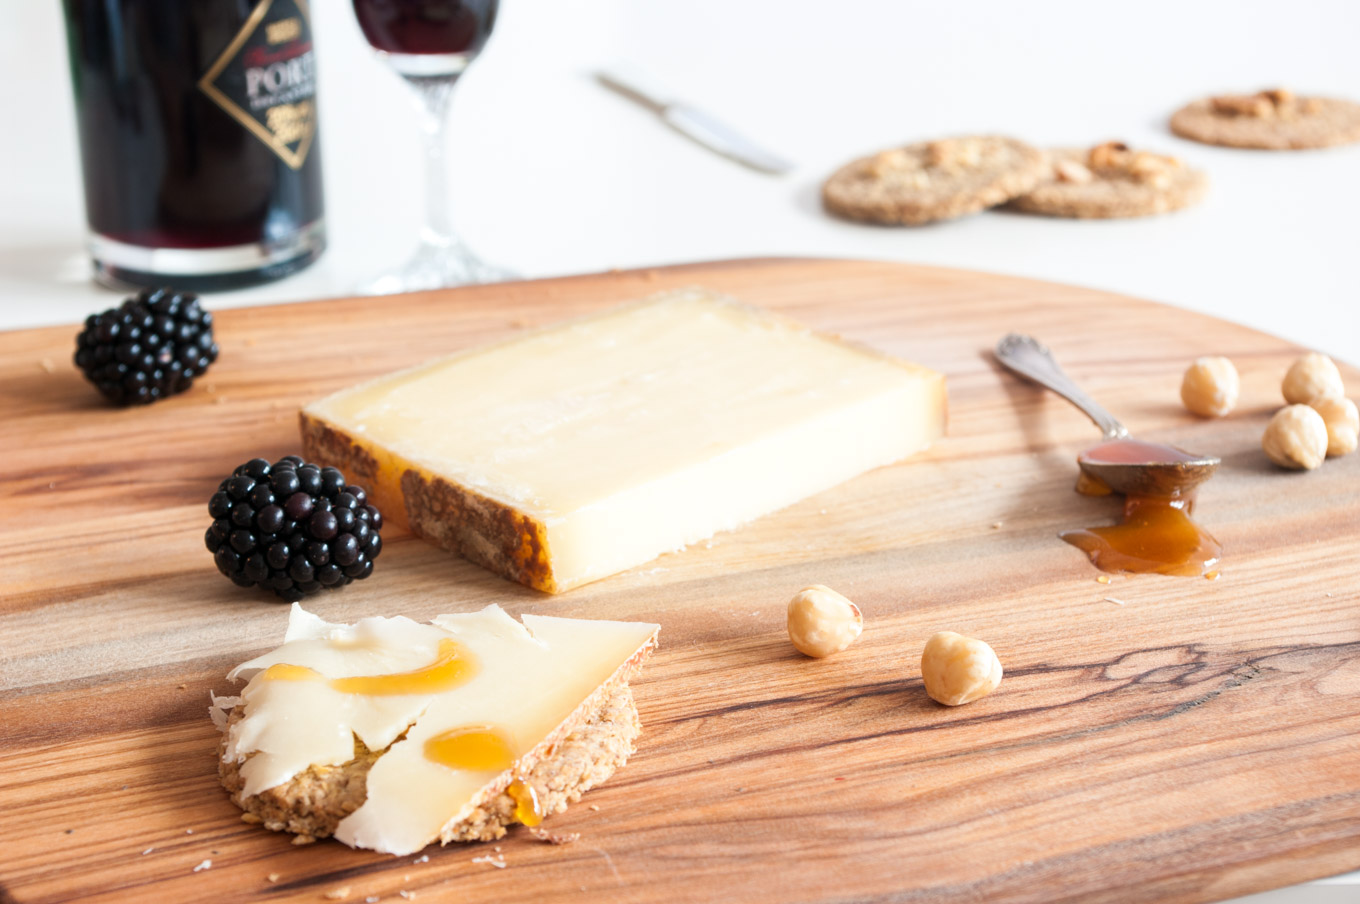 Gruyère Cheeseboard with Honey and Port – Aged Gruyère cheese with buckwheat oatcakes, blackberries, honey and Port. A great party sharing platter, excellent for a Christmas cheeseboard. By @deliciouscratch | deliciousfromscratch.com